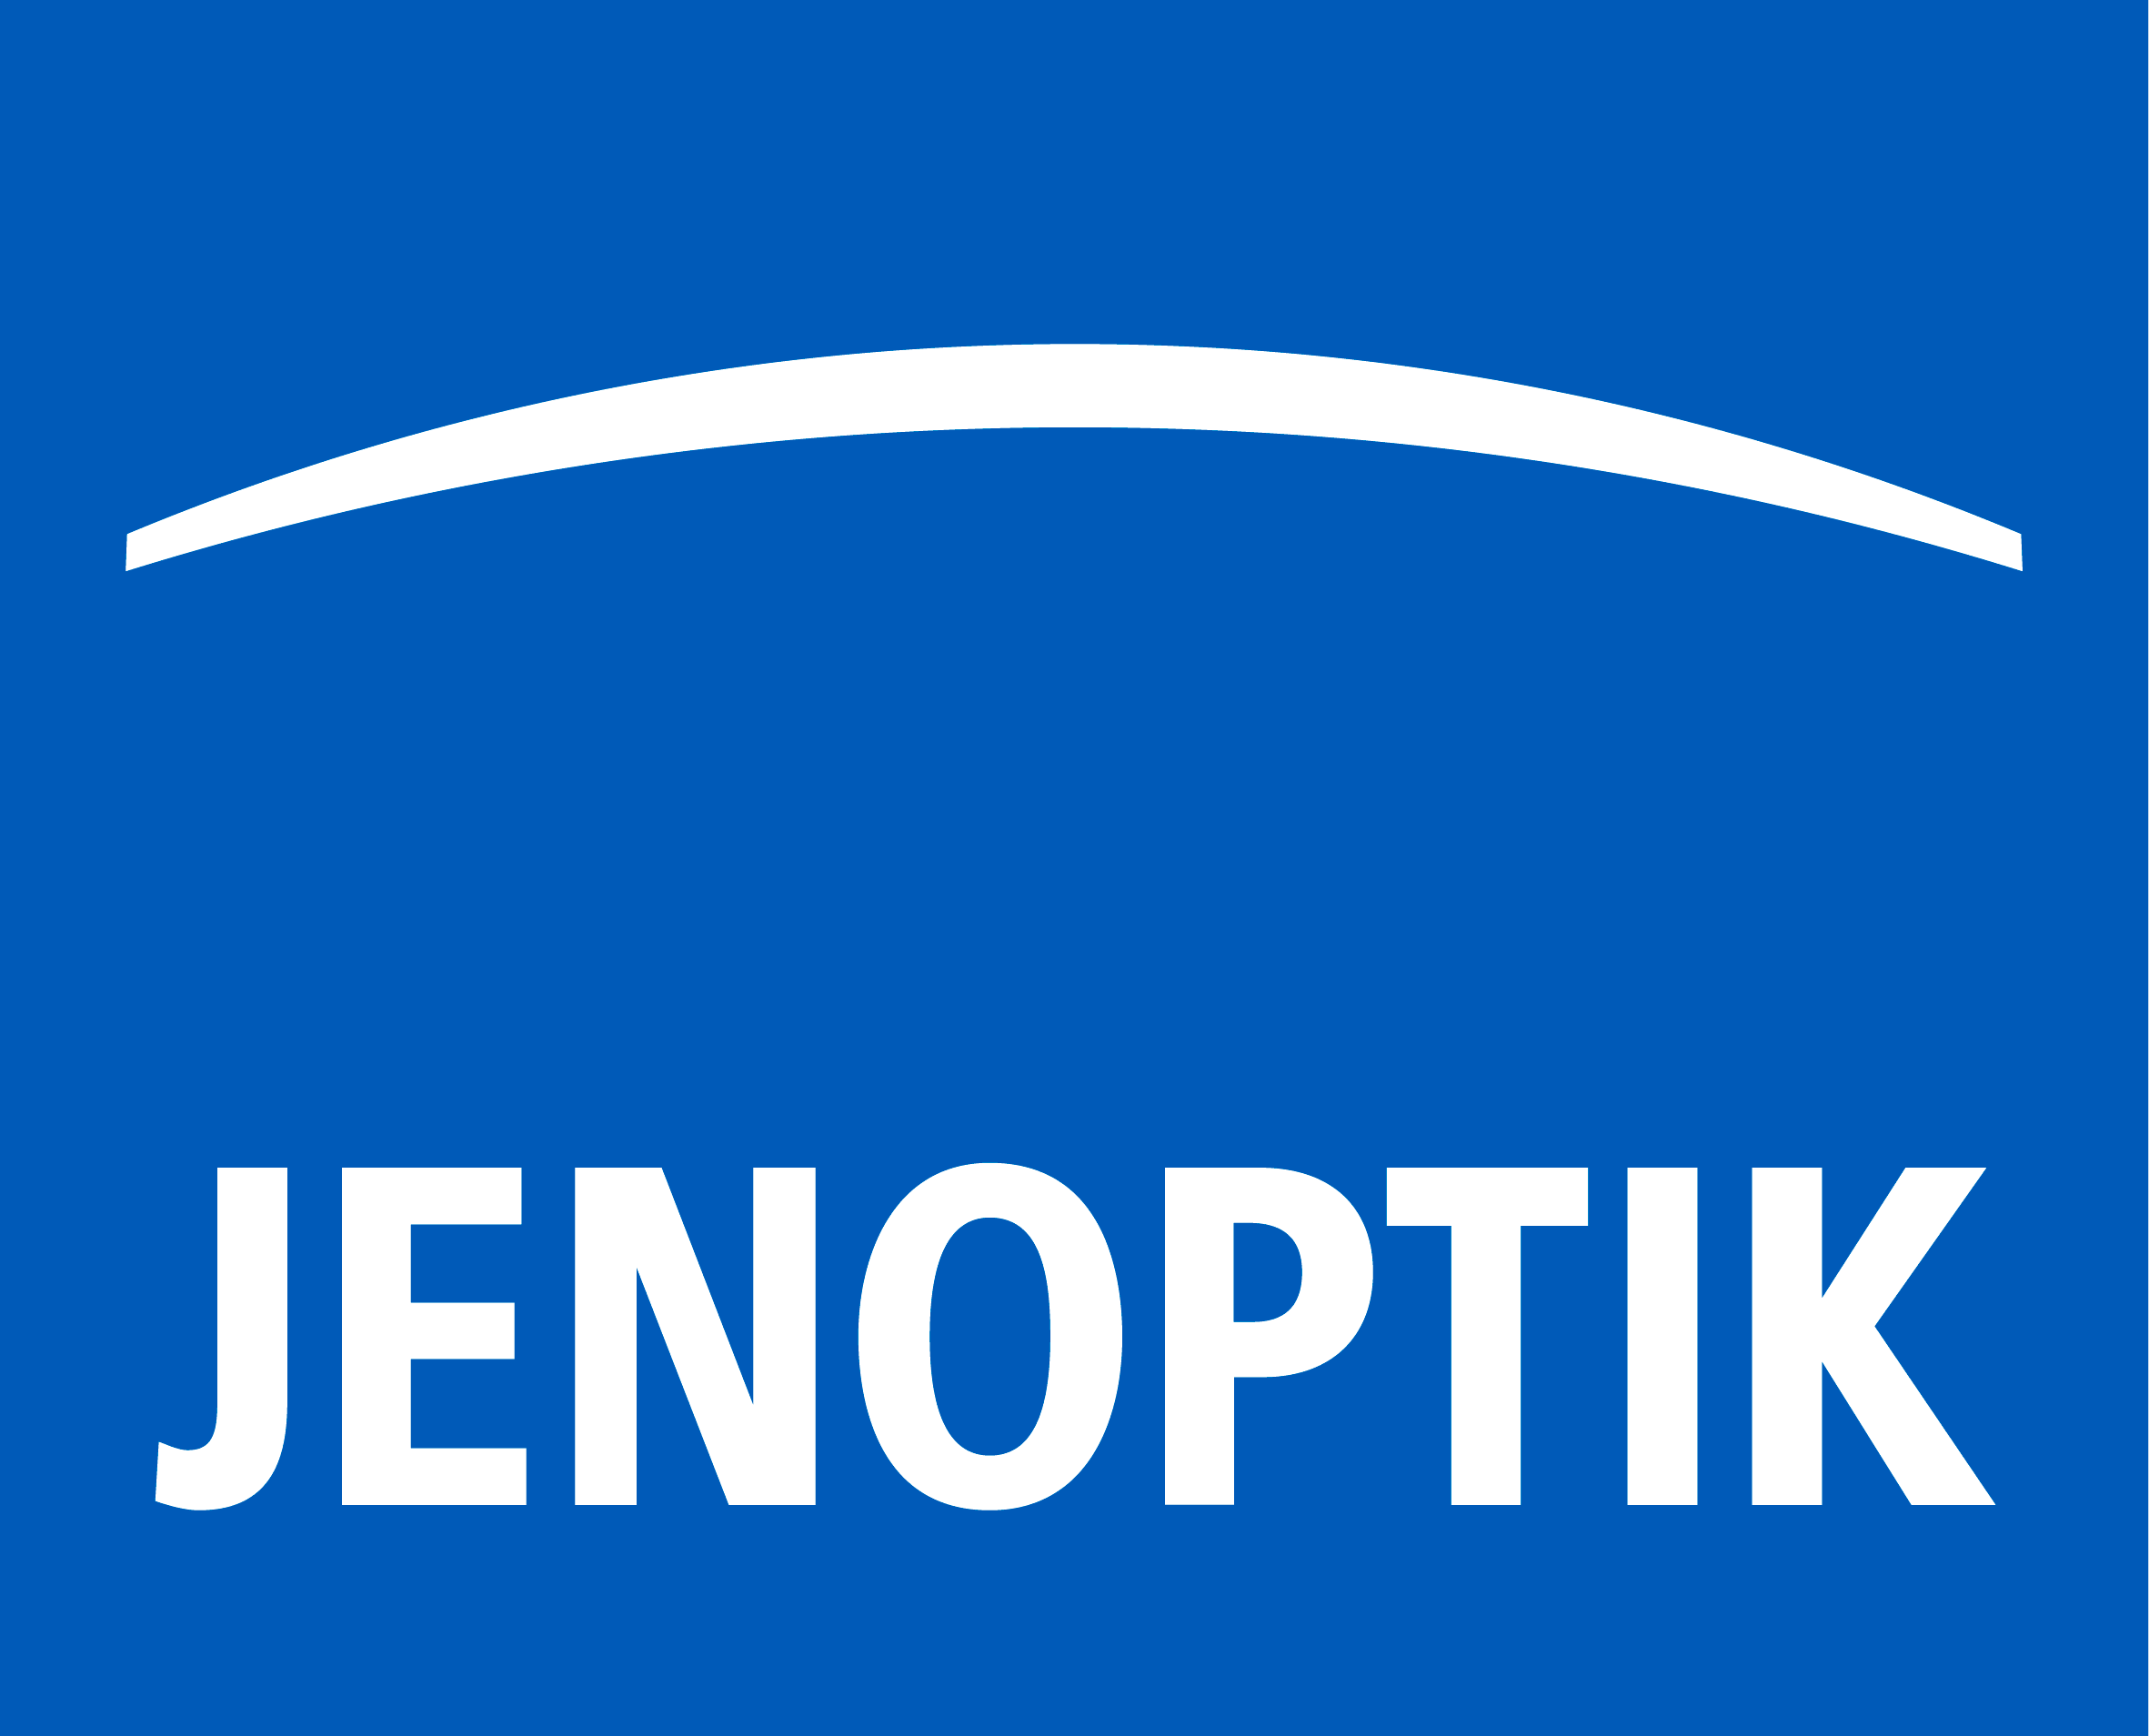 Vysionics Acquired by Jenoptik.